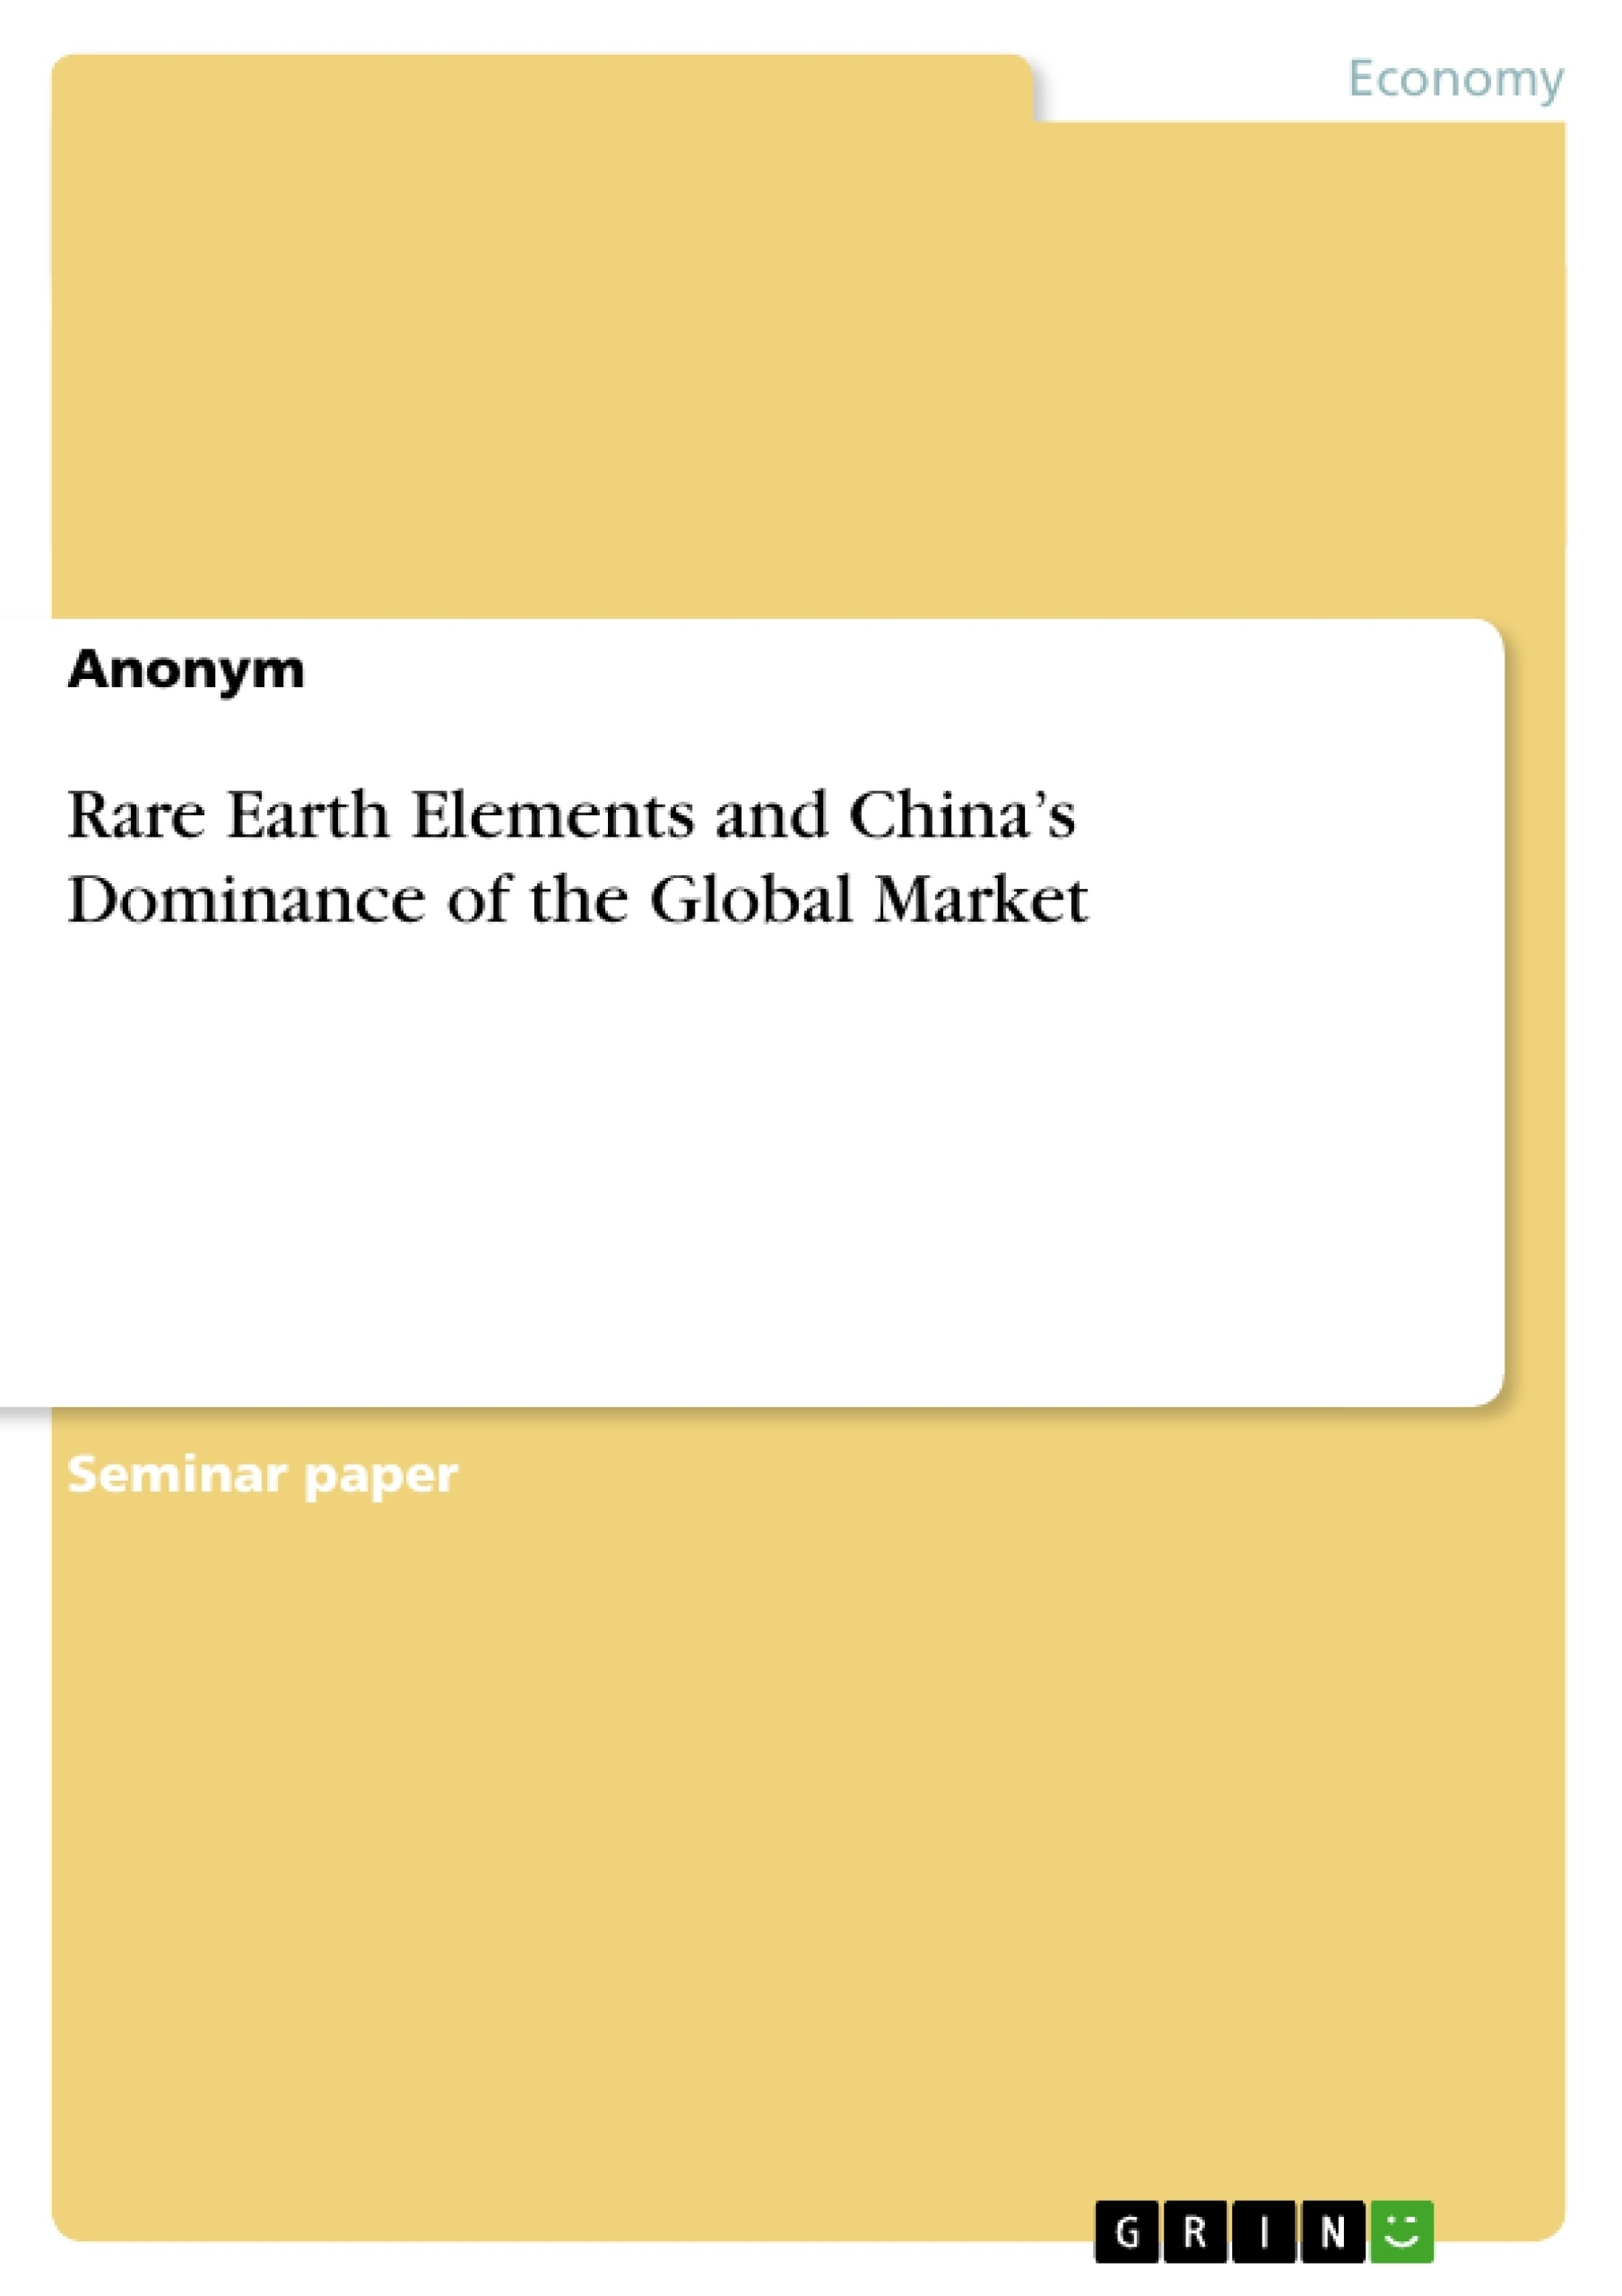 Title: Rare Earth Elements and China's Dominance of the Global Market